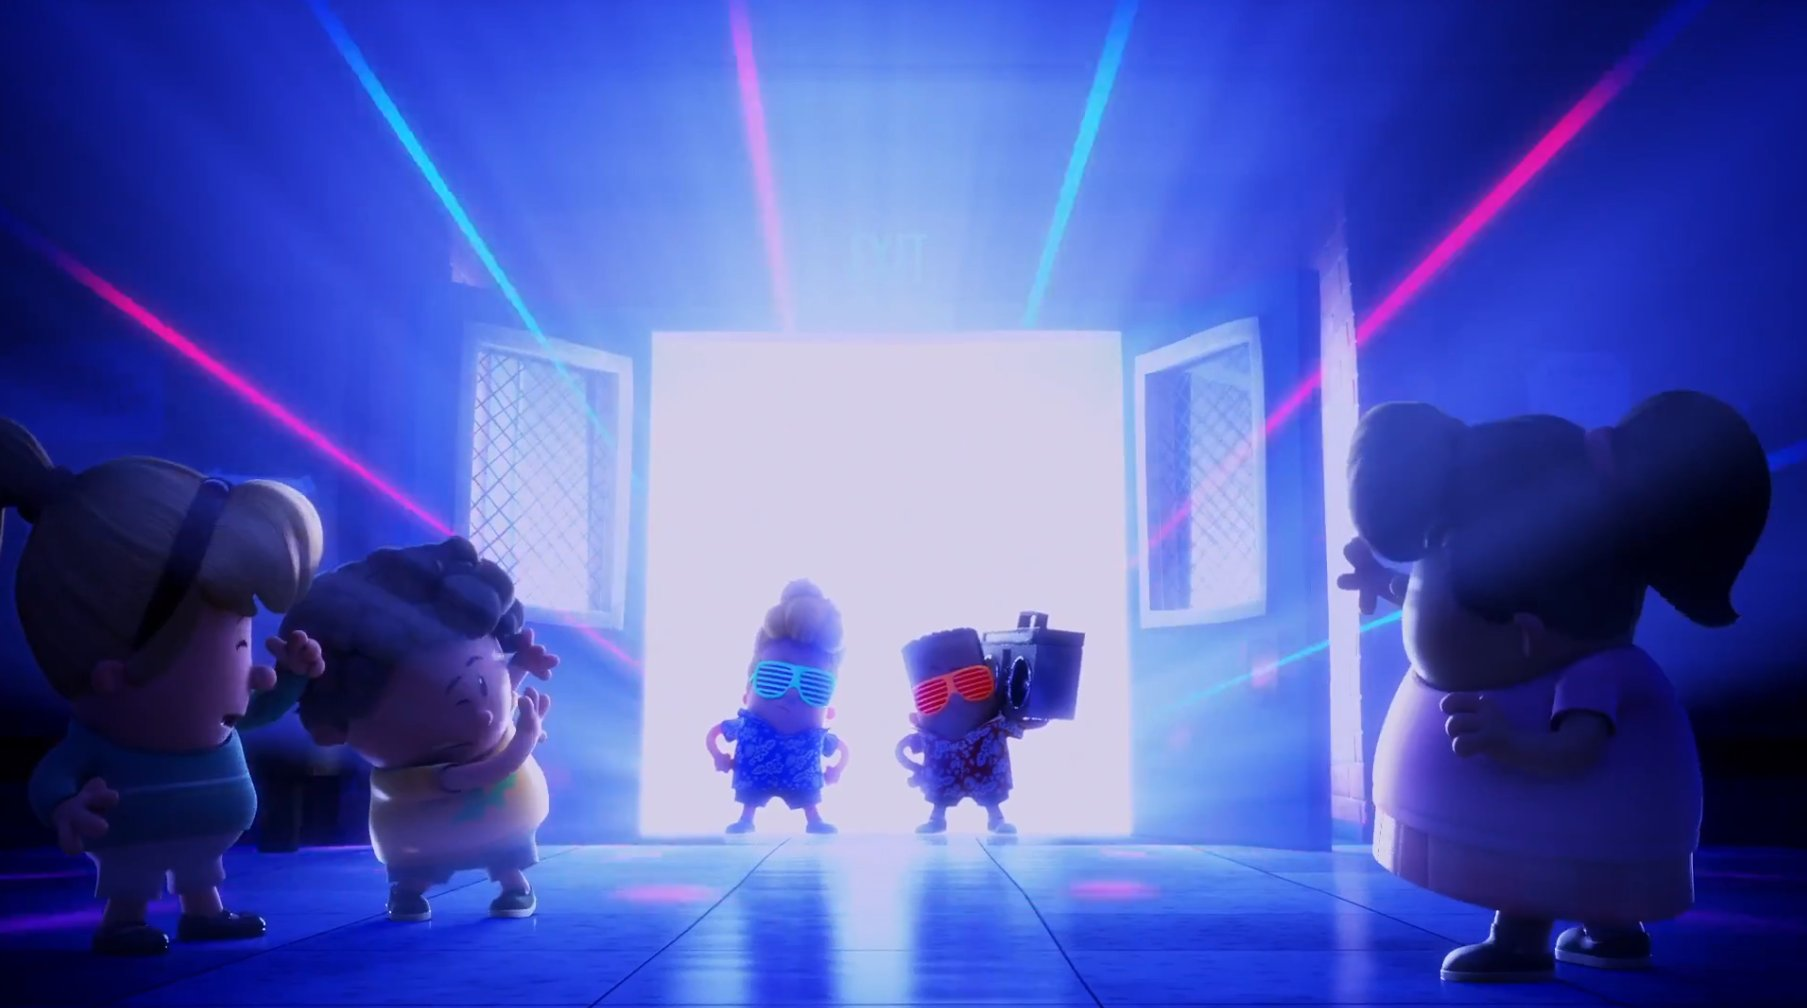 Captain Underpants: The First Epic Movie Trailer Unveiled